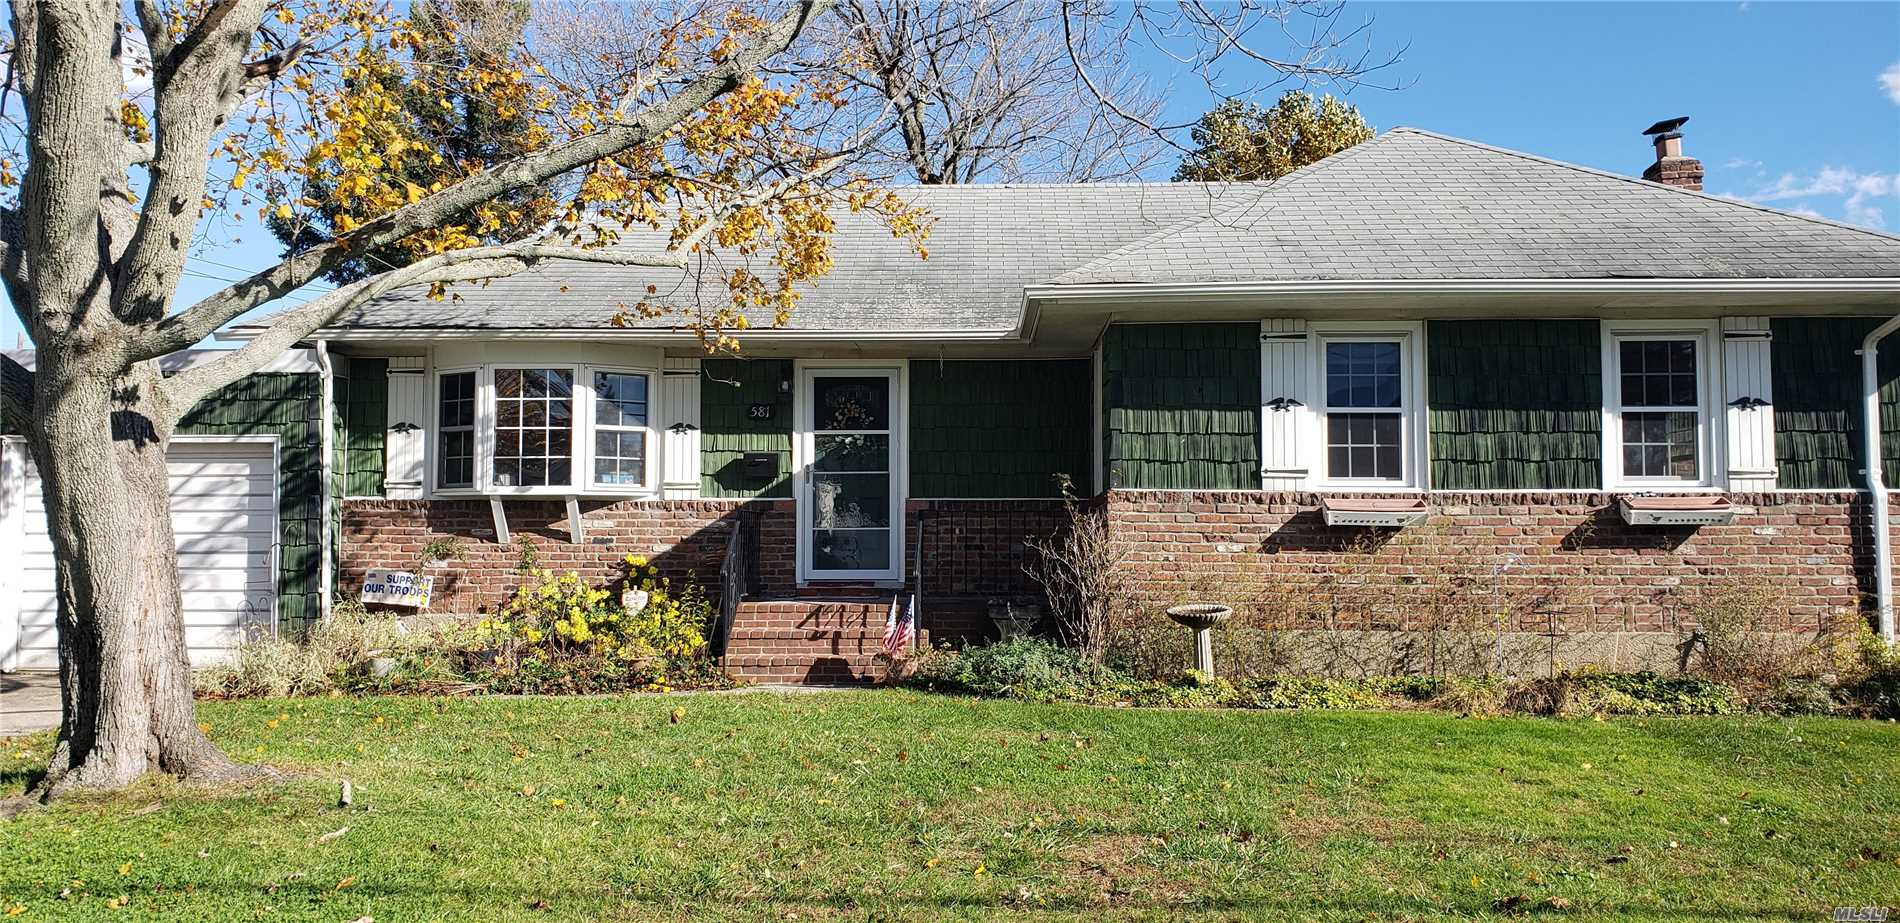 3 Br 2Fbth Ranch That Needs Tlc And It's Waiting For You To Make It Your Own. It Features All Hardwood Floors, Cac, And Newer Windows. Also Has Full Basement W/Ose And A Double Driveway. Welcome Home!!!